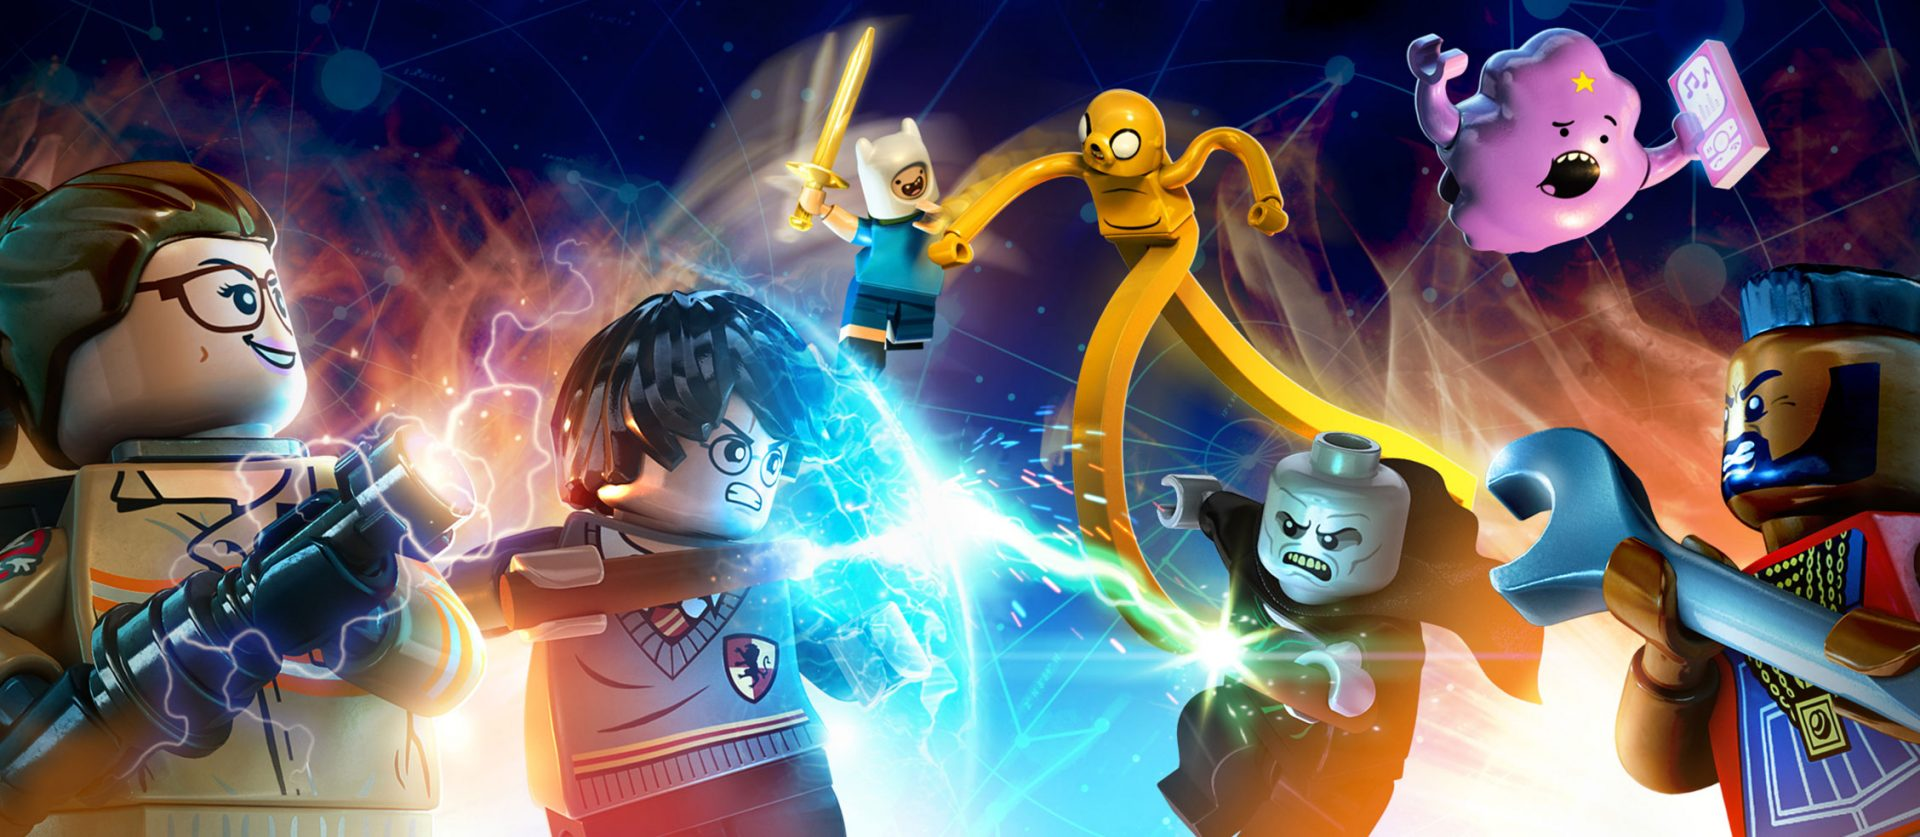 LEGO Dimensions Gets Expansions Based on Ghostbusters, Adventure Time, and More